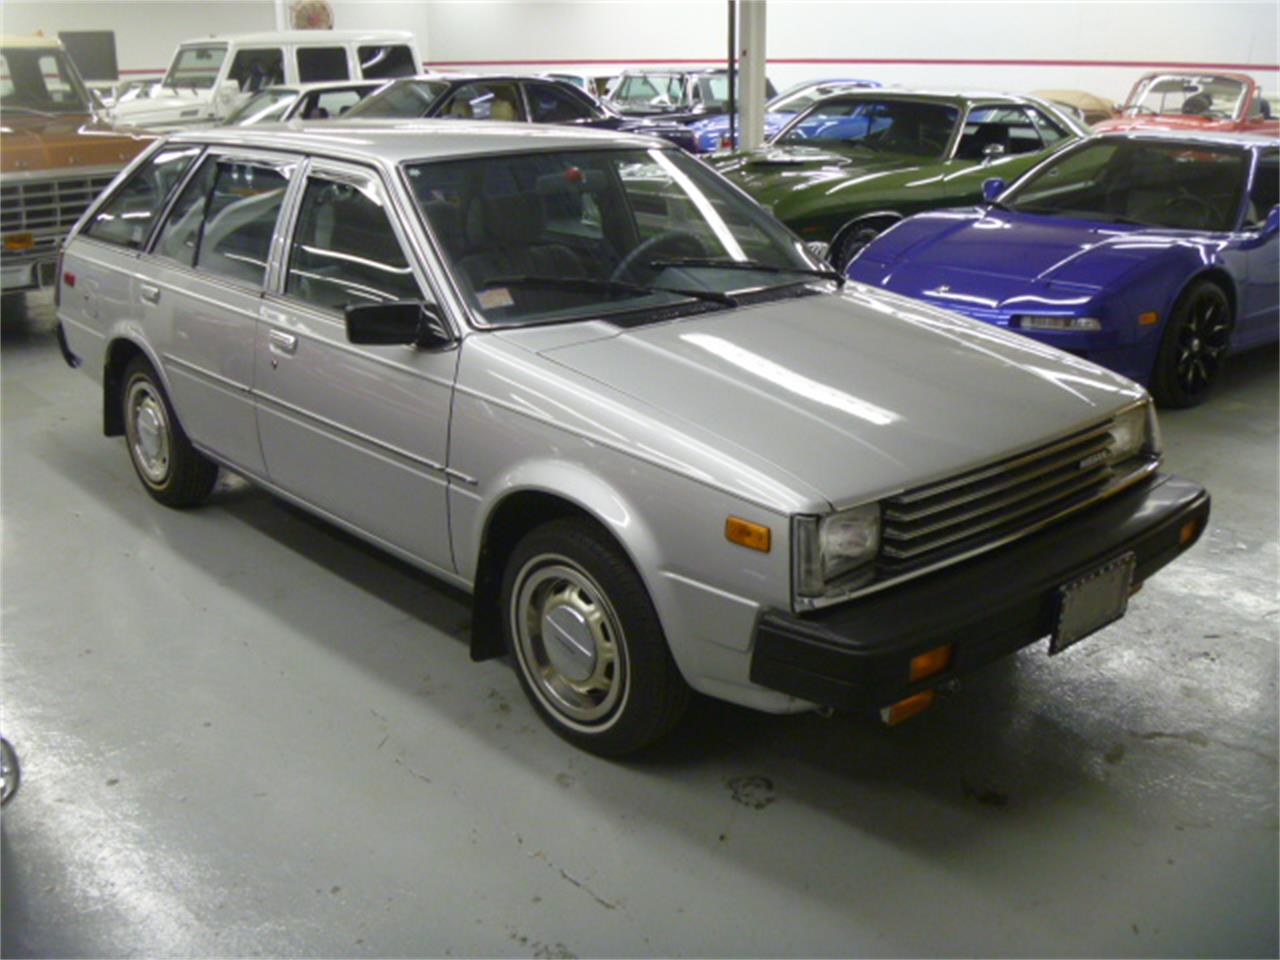 Nissan Dealers In Illinois >> 1983 Nissan Sentra wagon for Sale   ClassicCars.com   CC-920579